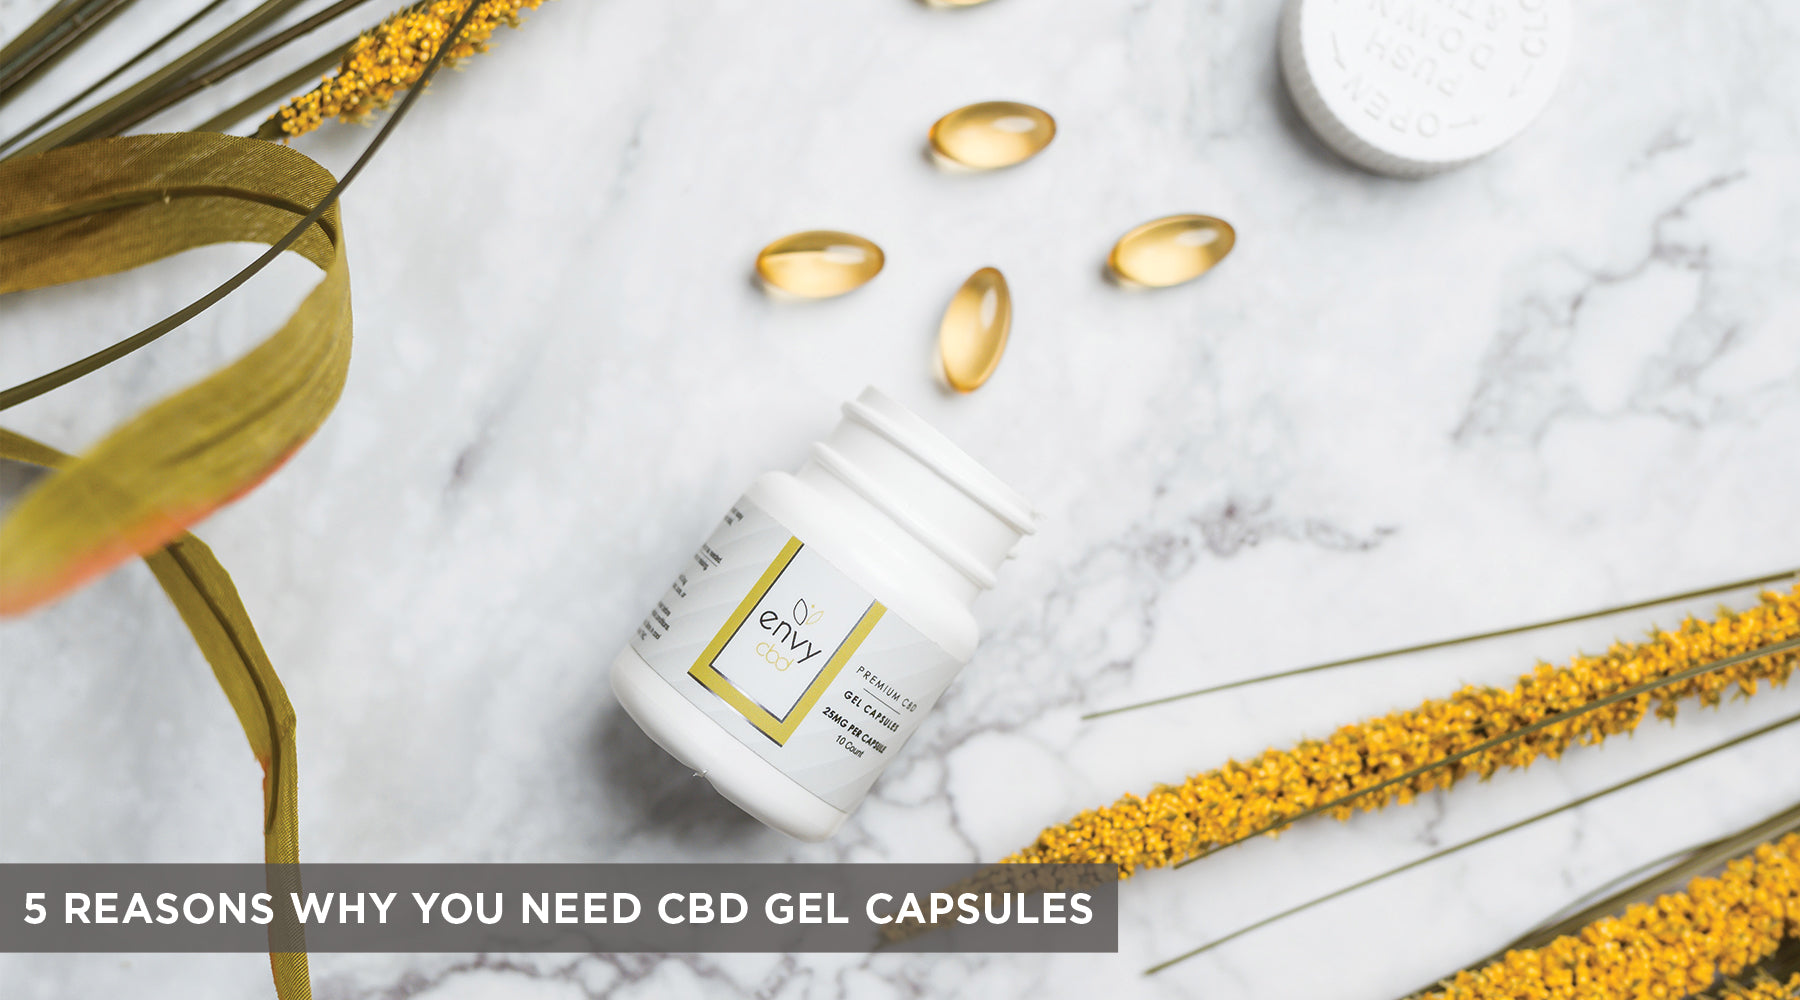 CBD Gel Capsules container is uncapped and laying label side-up on a white tabletop surface with several gel capsules displayed.